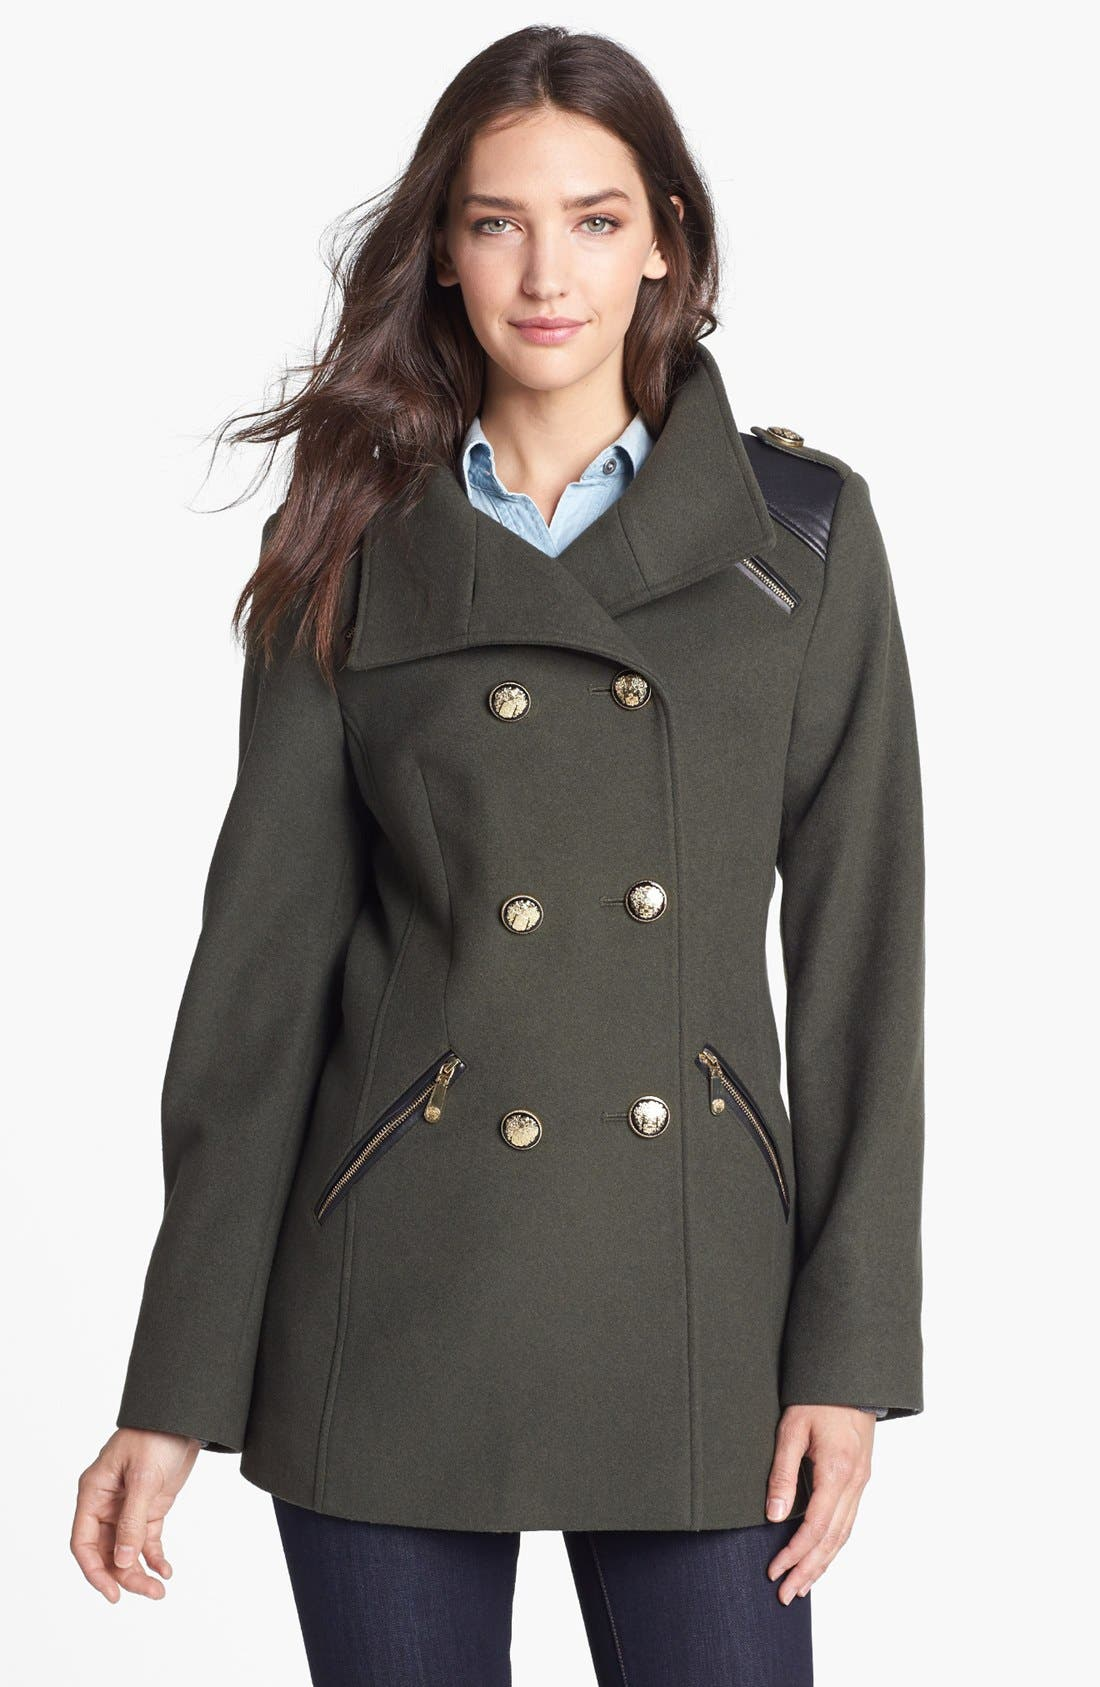 Main Image - Vince Camuto Wool Blend Military Peacoat